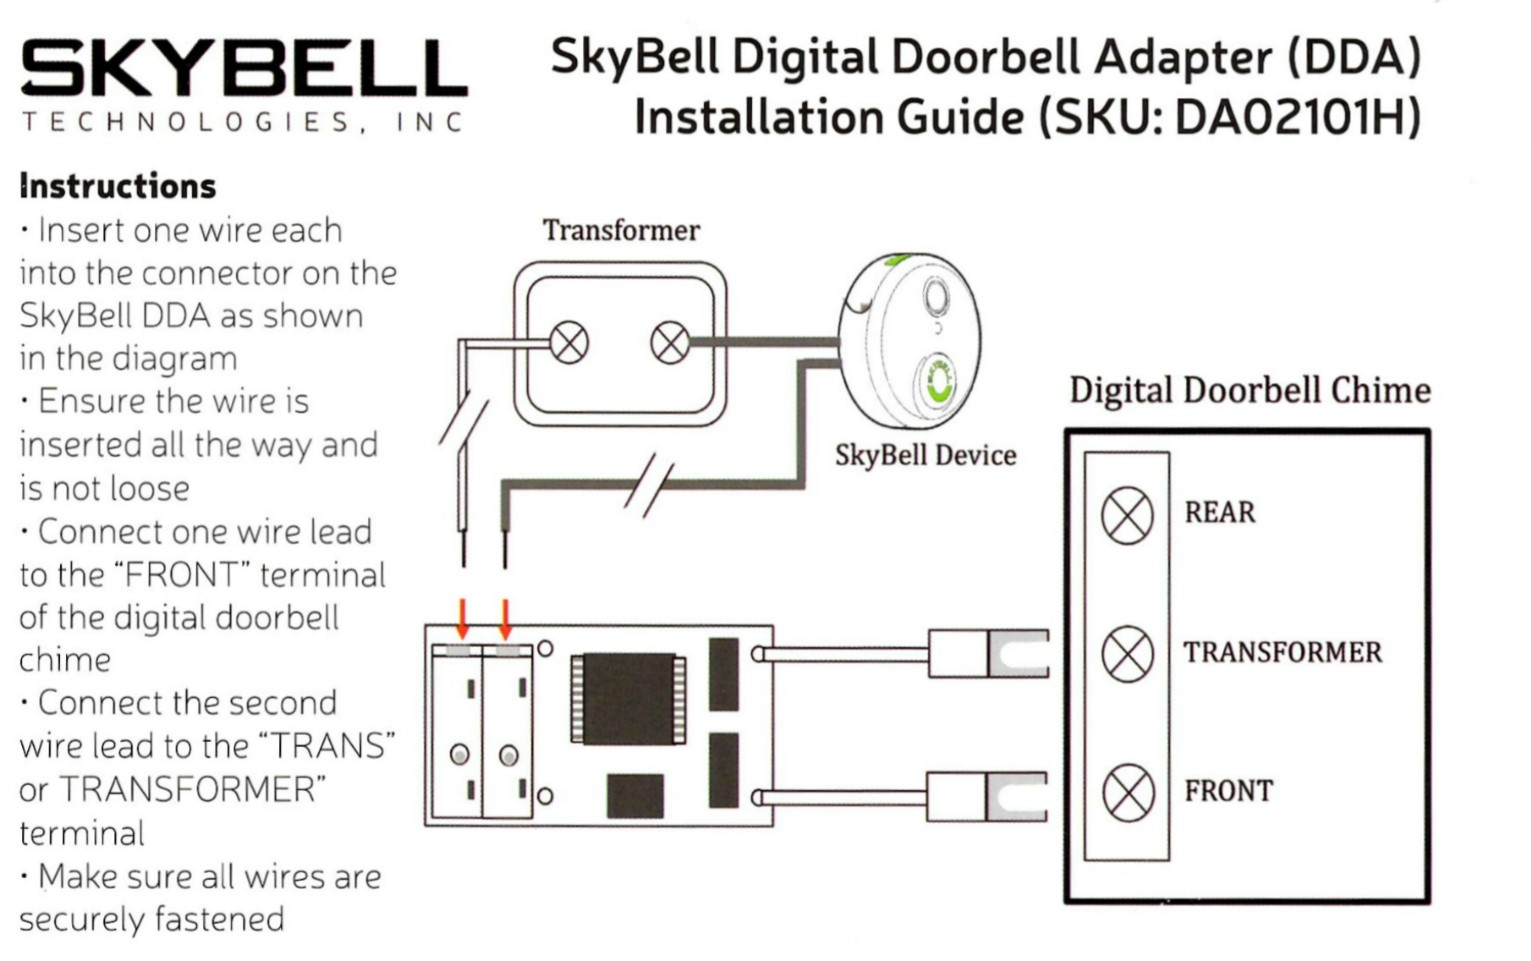 Wiring Instructions Chase Bank Dda Just Another Diagram Blog Do I Need A Digital Doorbell Adapter How Install It Skybell Rh Skybelltechnologies Zendesk Com Of The West